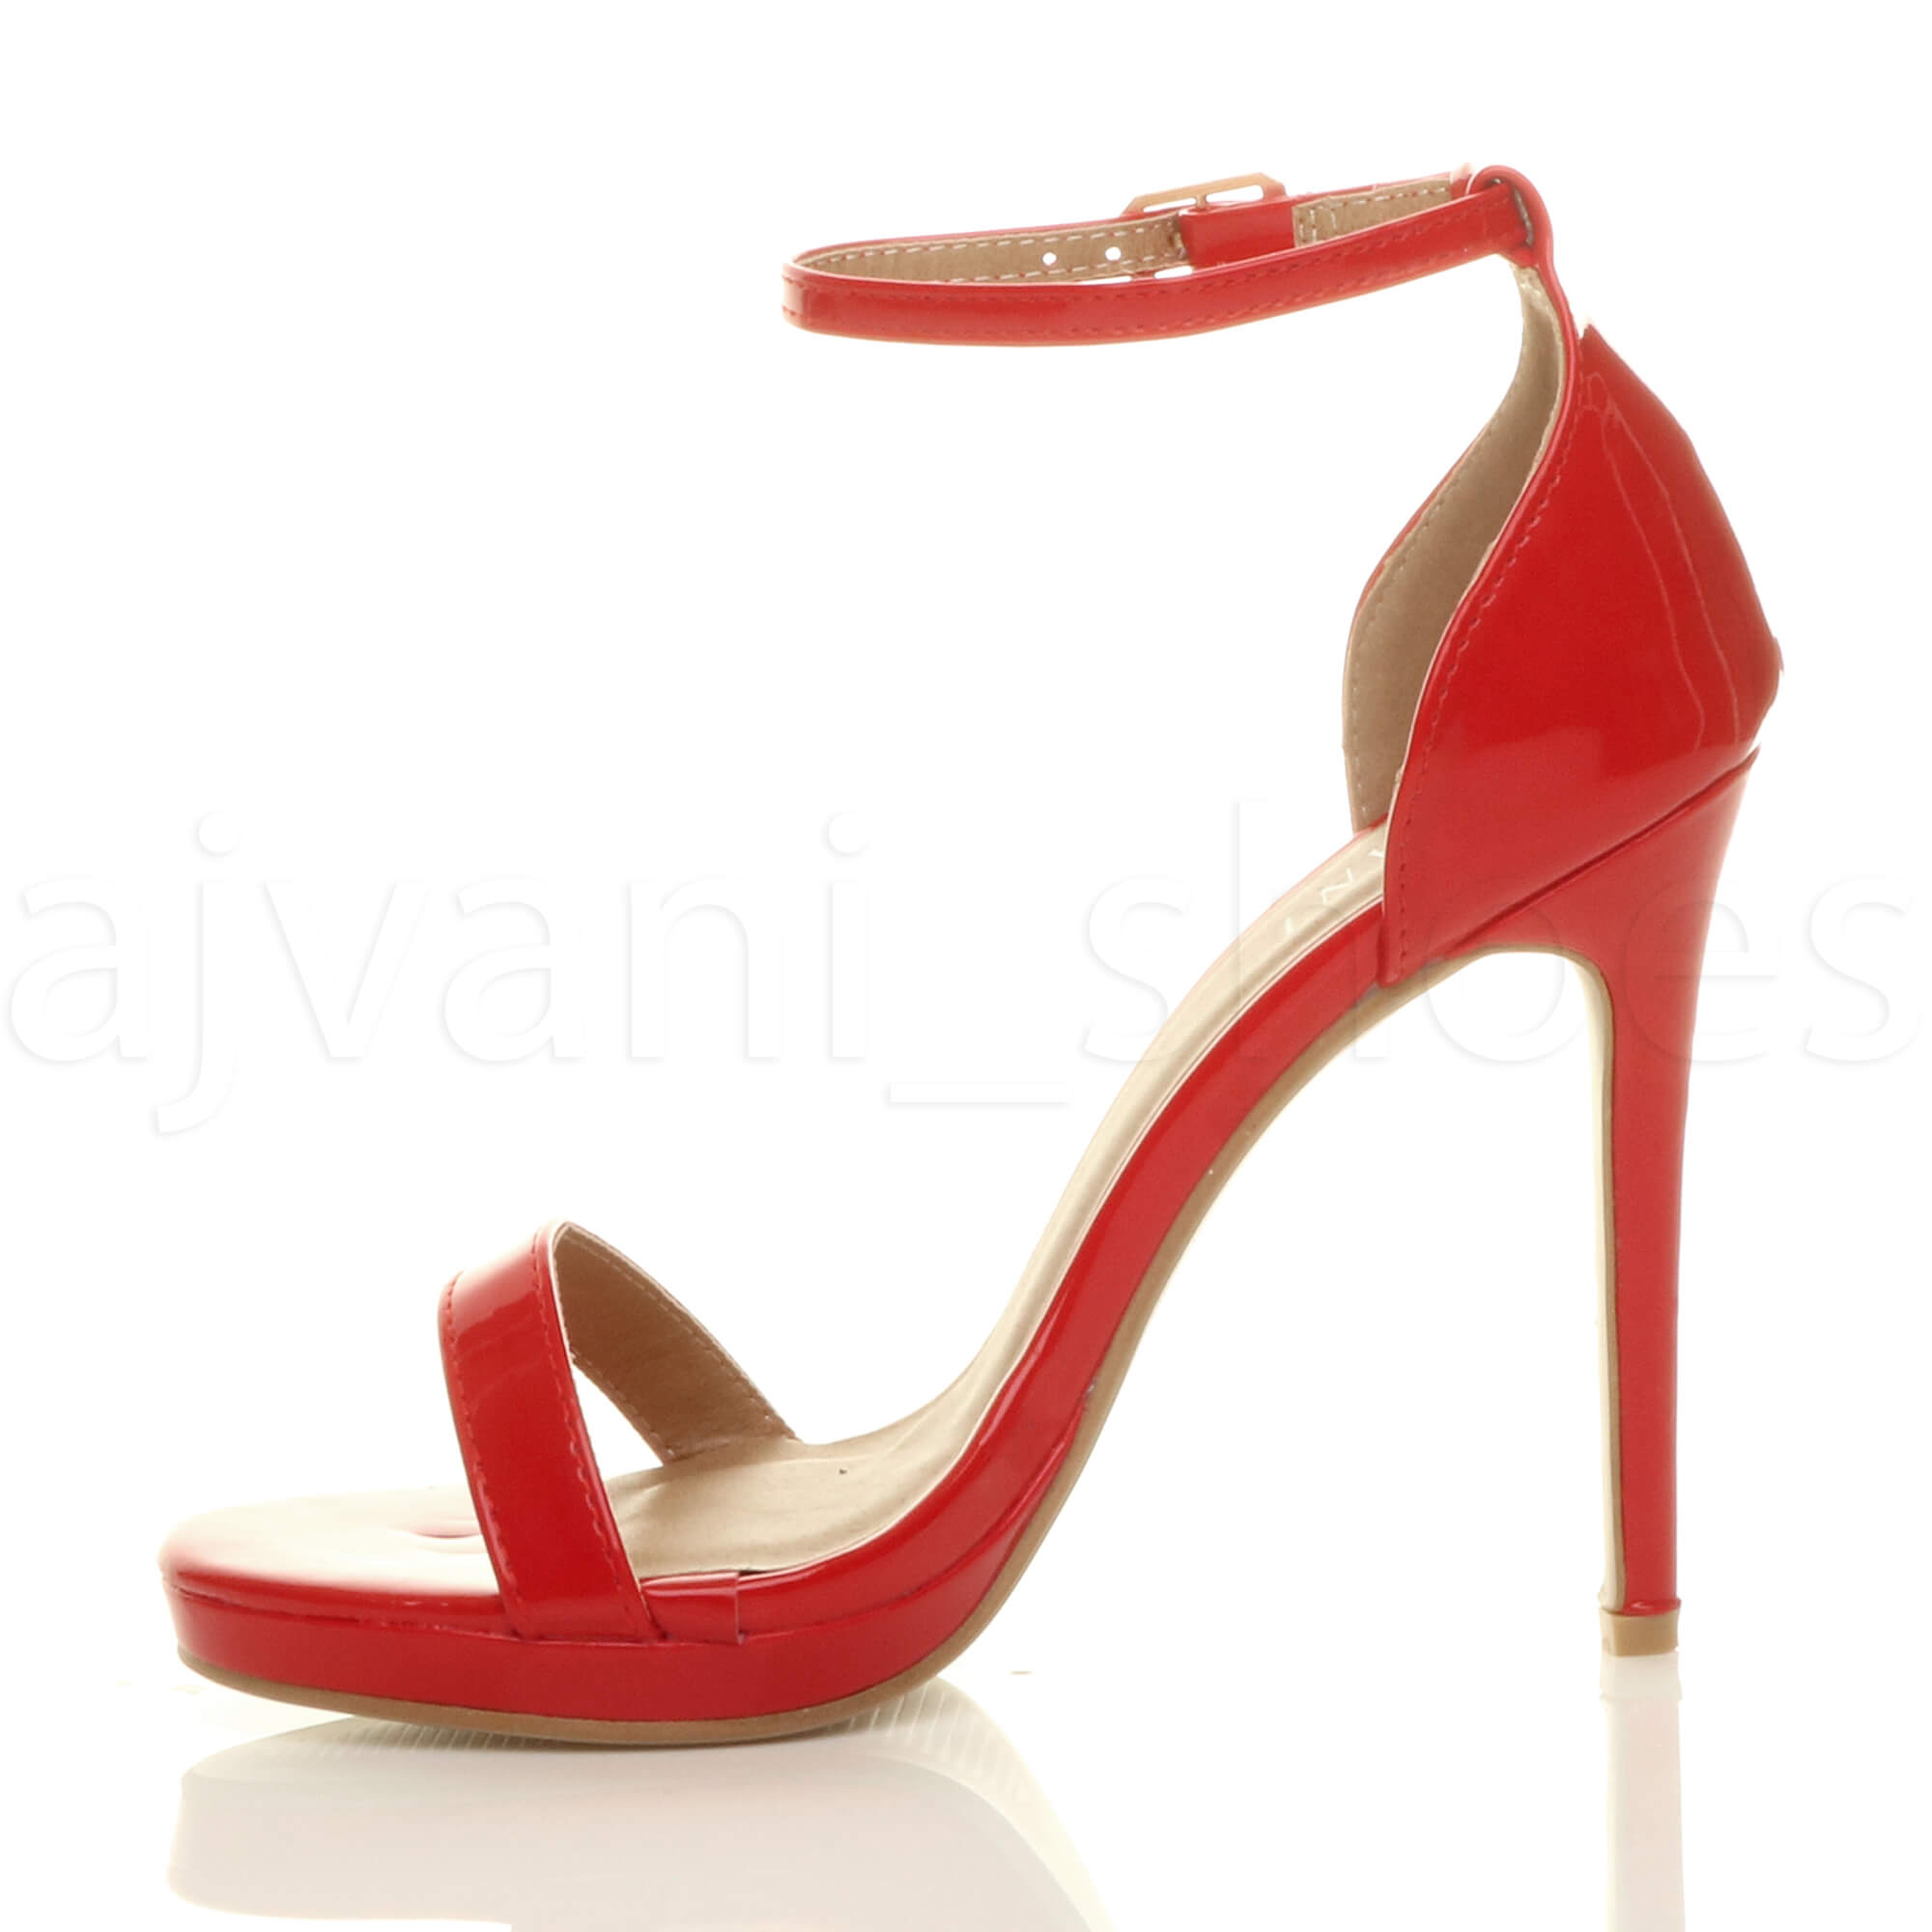 WOMENS-LADIES-HIGH-HEEL-PEEP-TOE-BARELY-THERE-ANKLE-STRAP-BUCKLE-SANDALS-SIZE thumbnail 99